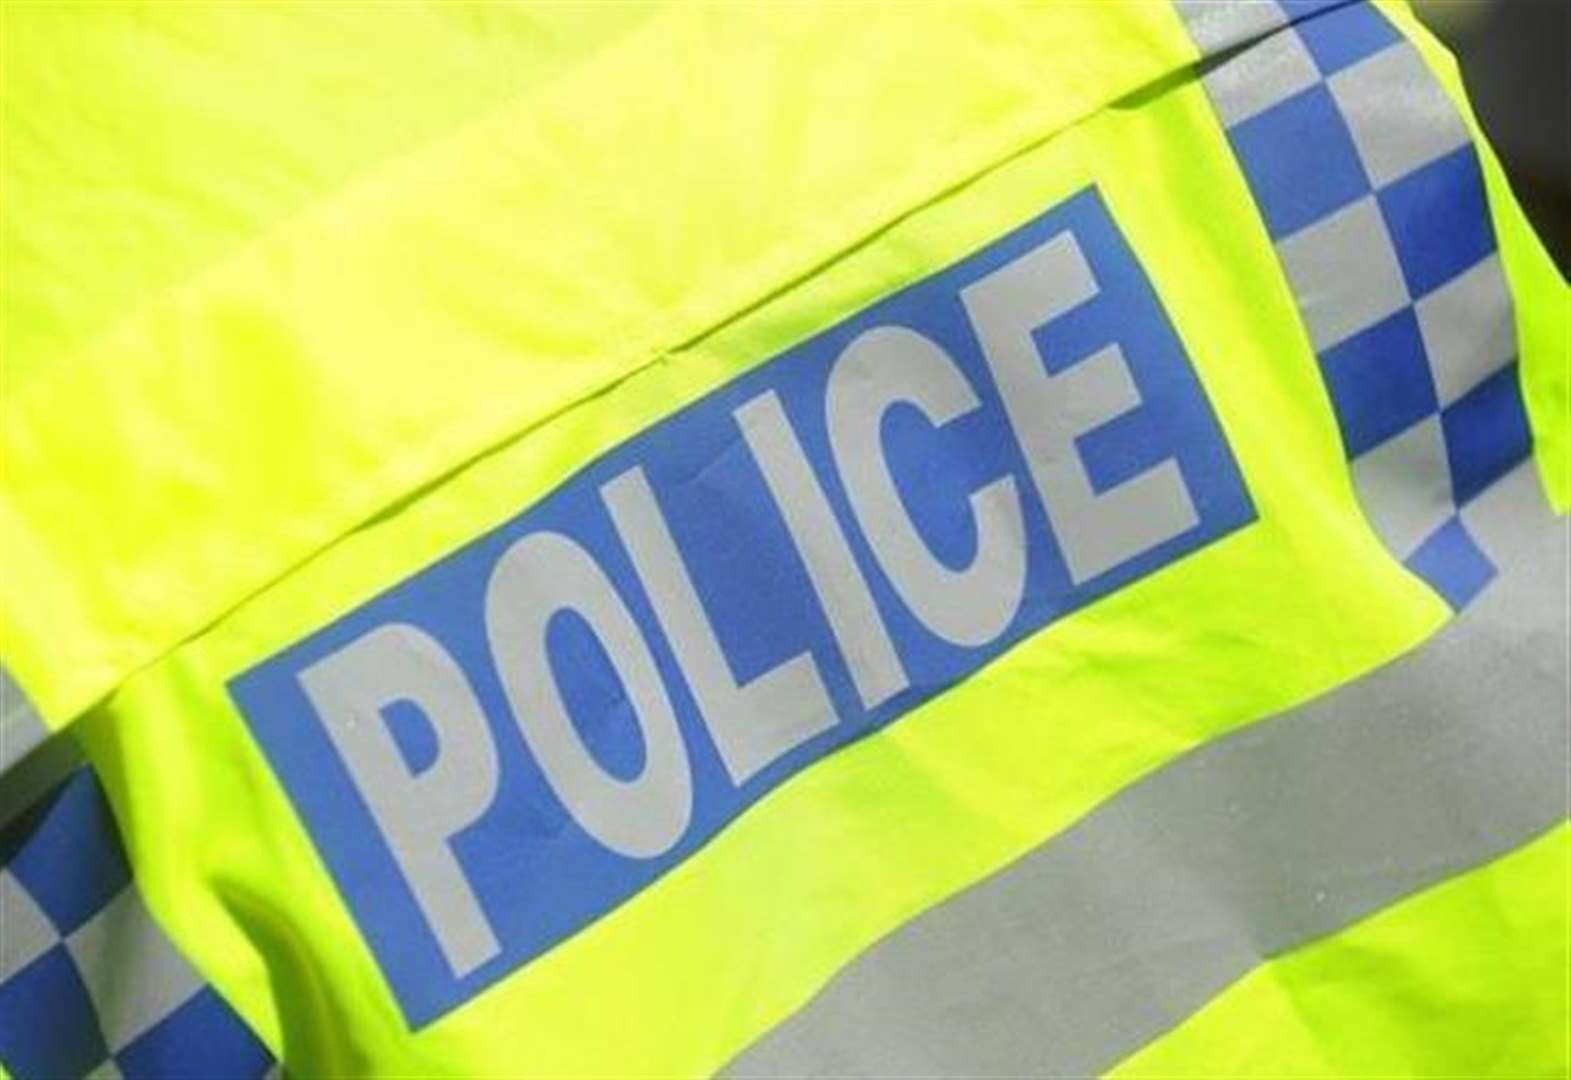 Police on scene of A1 collision near Grantham